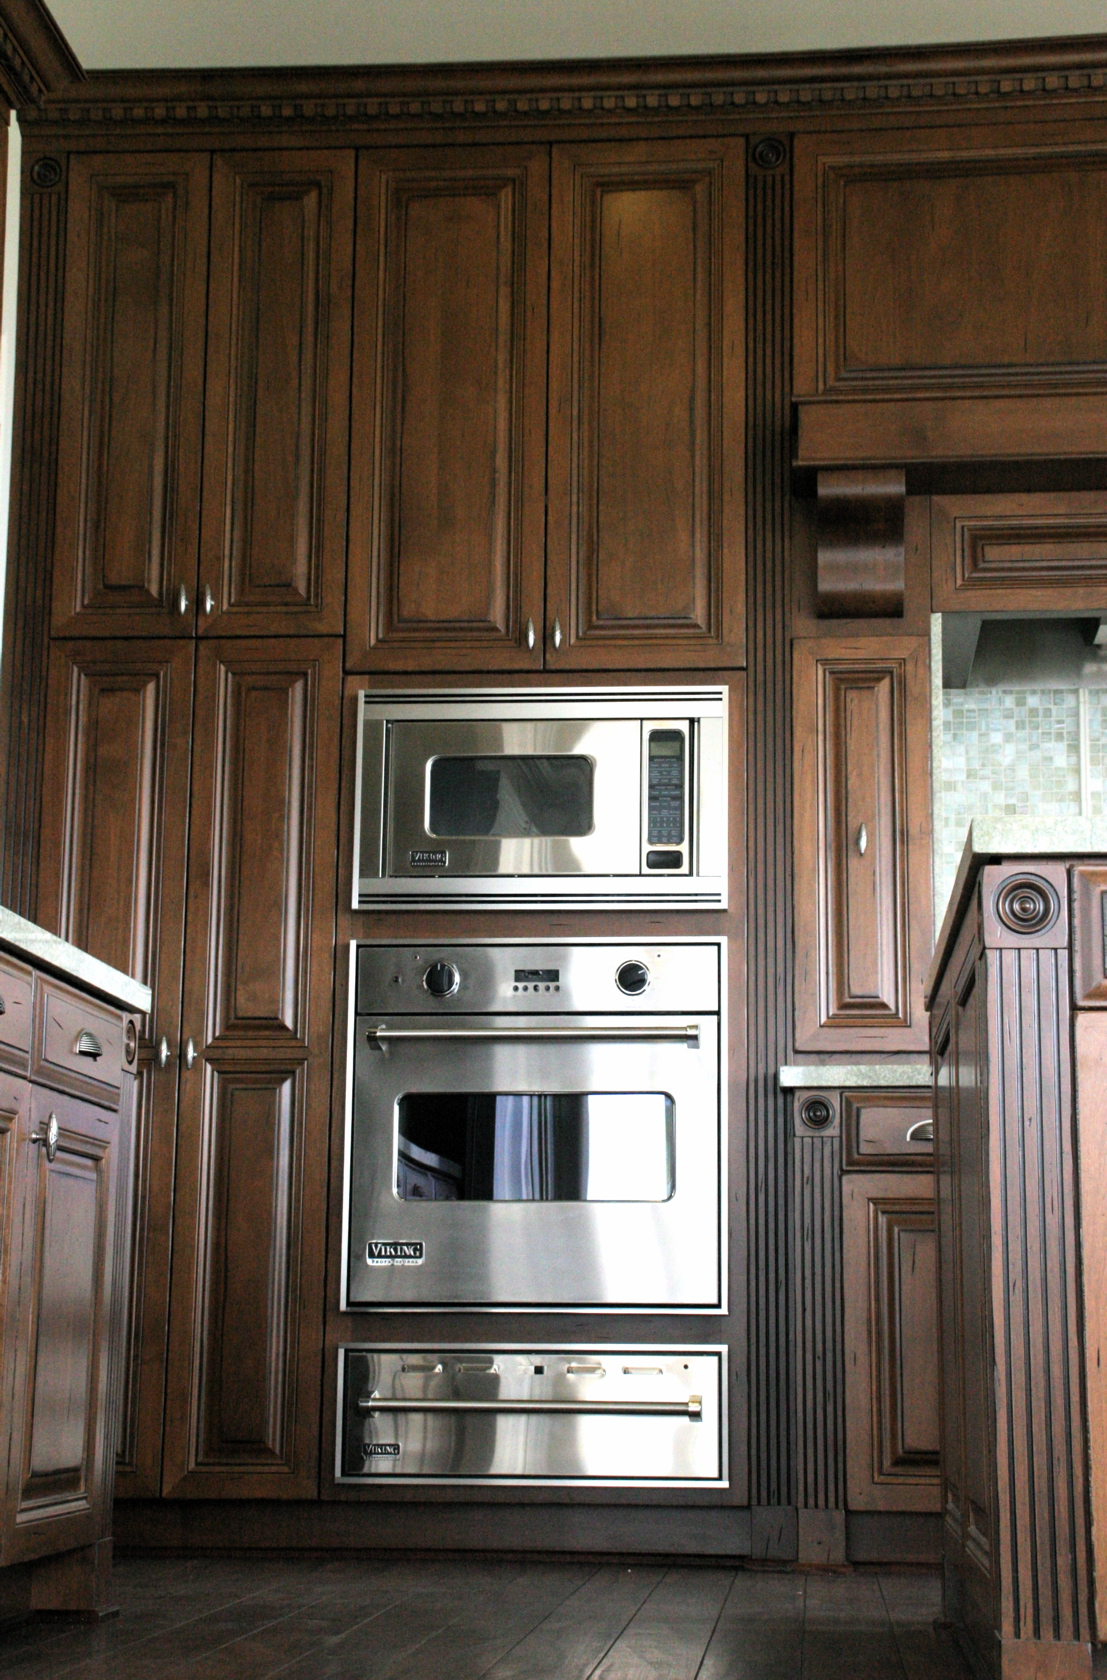 Rubottom Cabinets with Viking Appliances